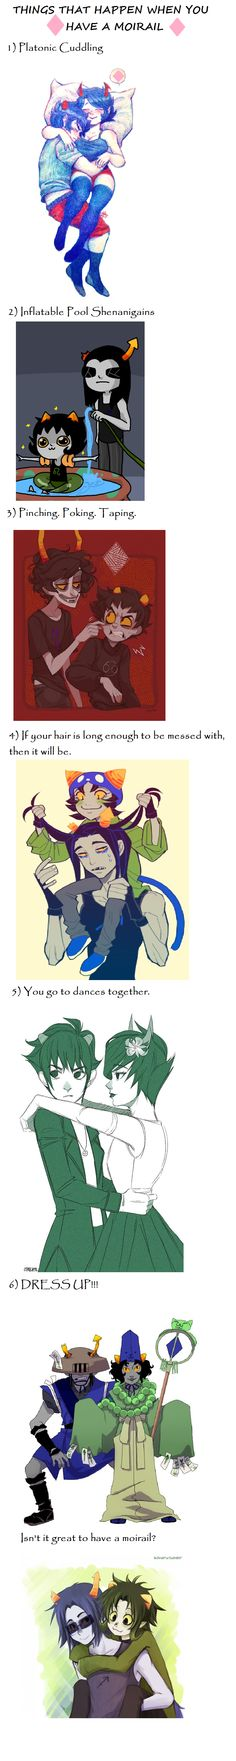 <> #Homestuck #Moirail<< I wish we had this kind of relationship on earth